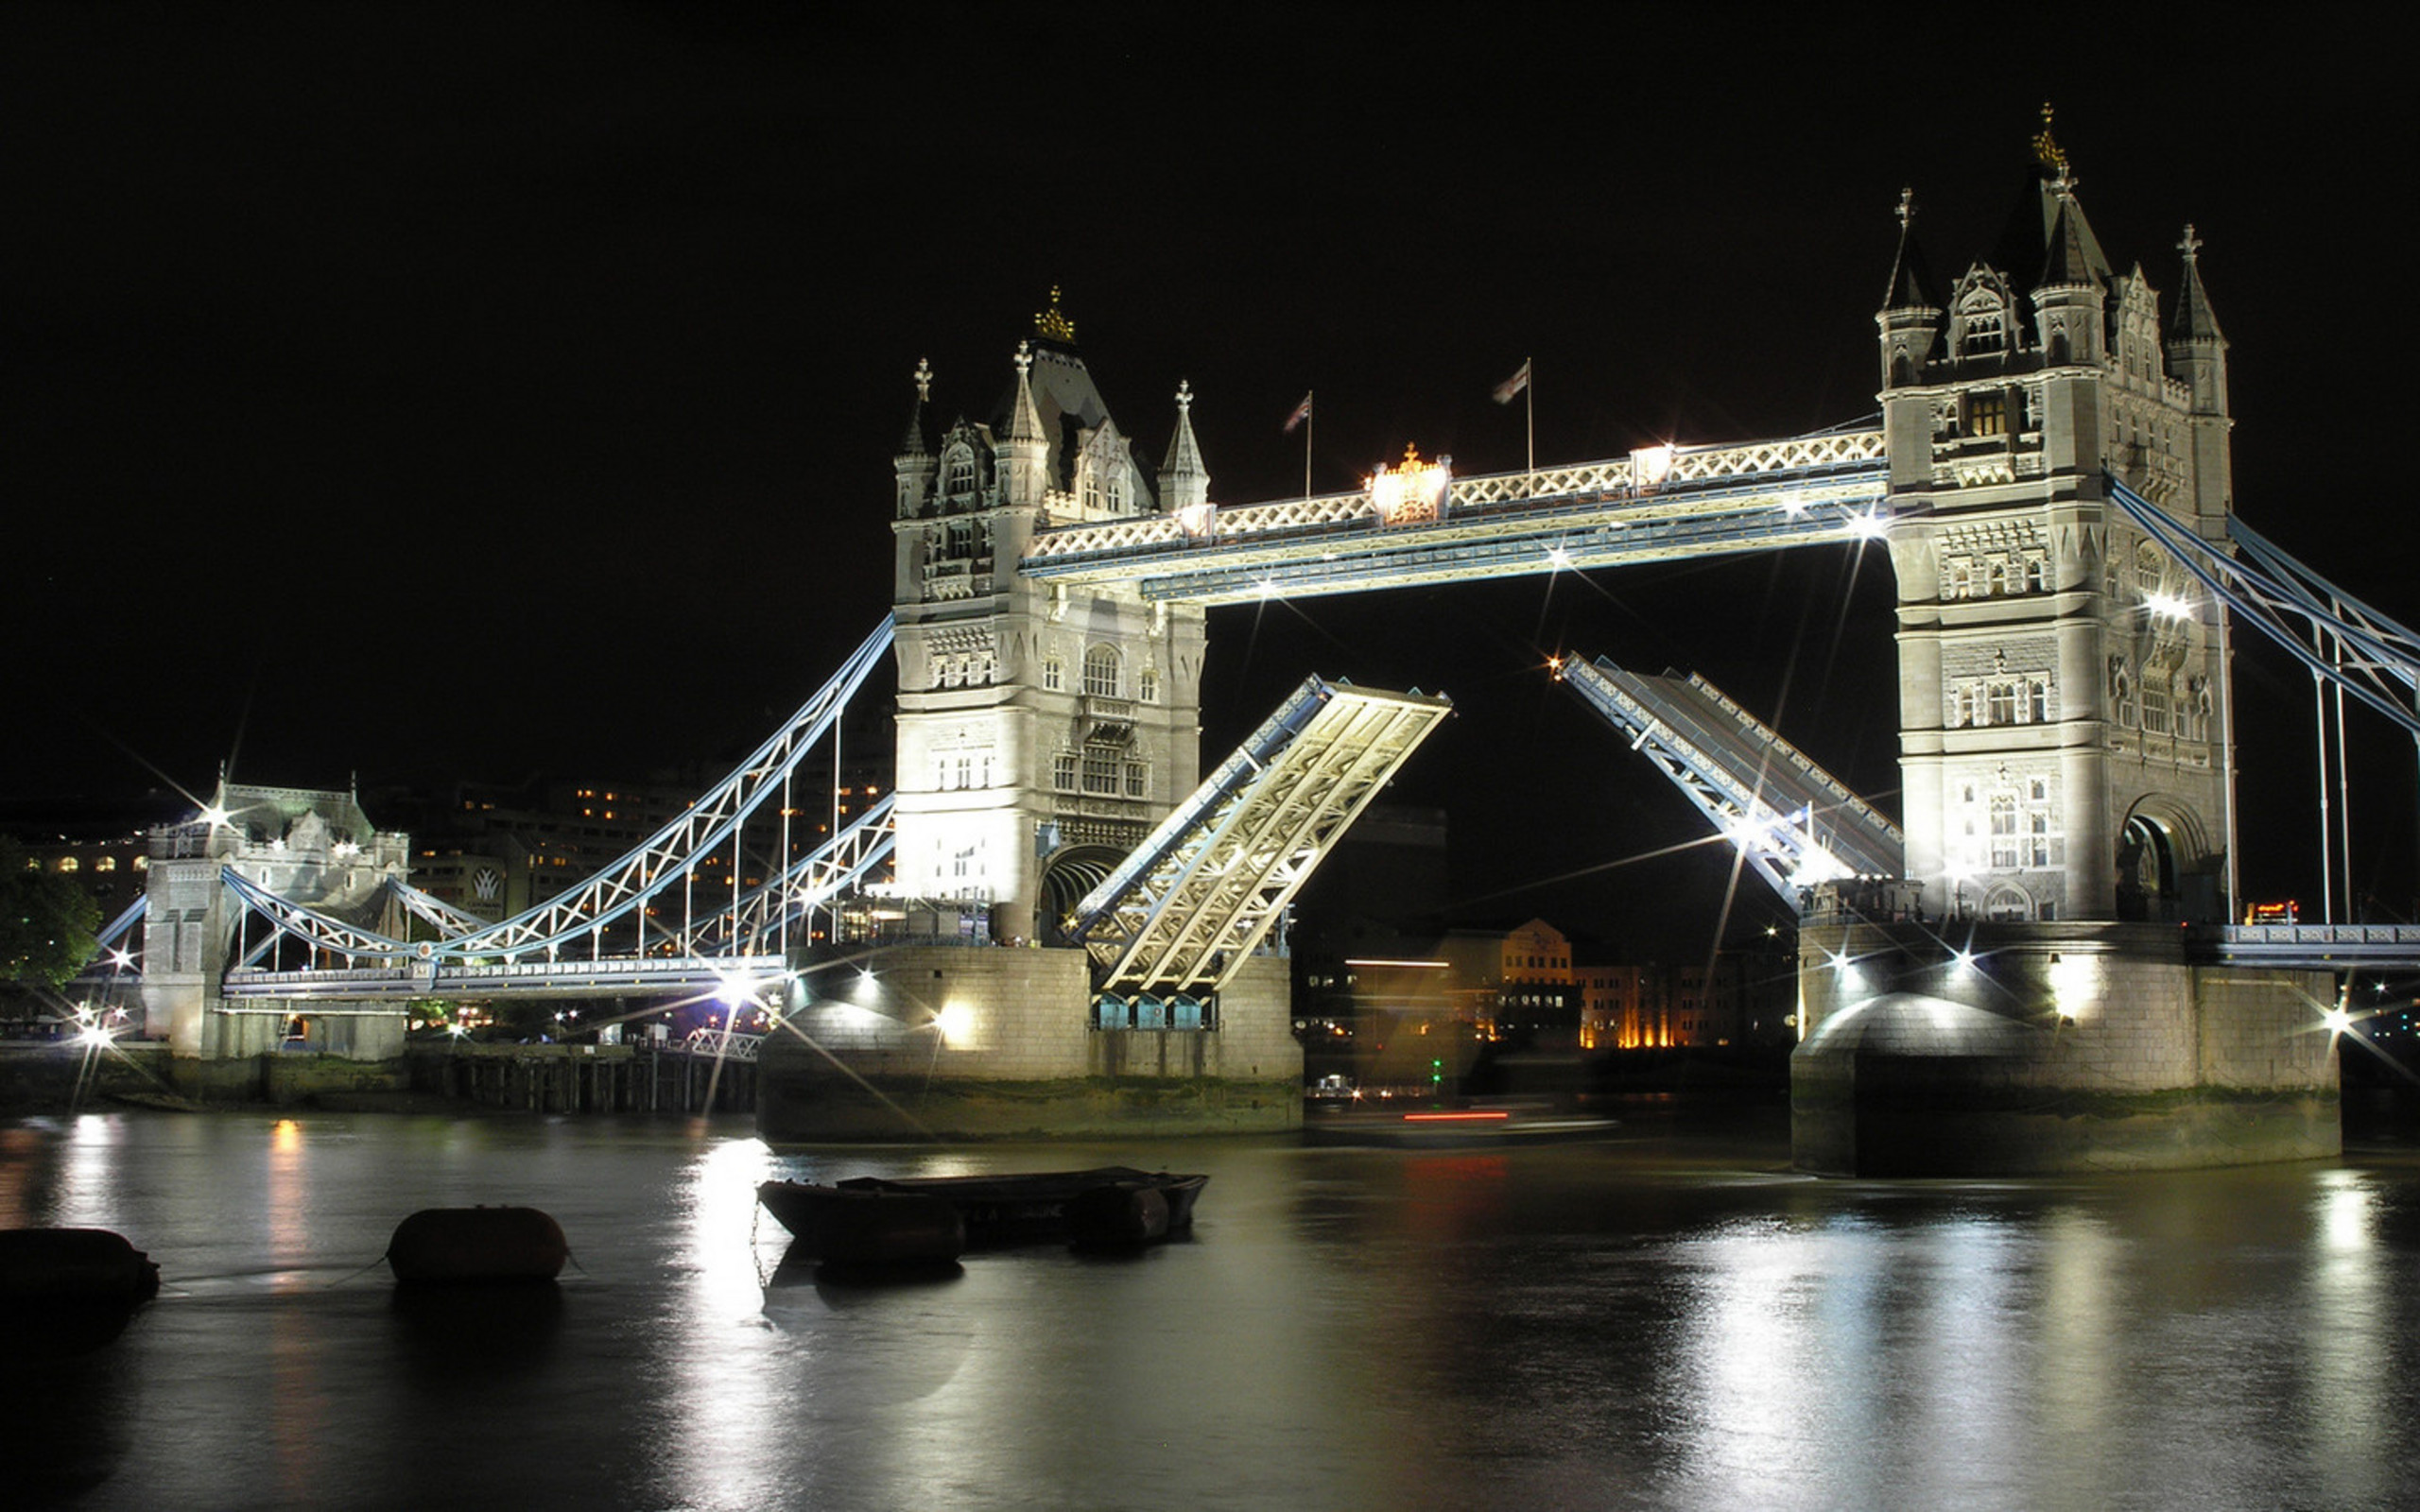 London Bridge Night 730.92 Kb